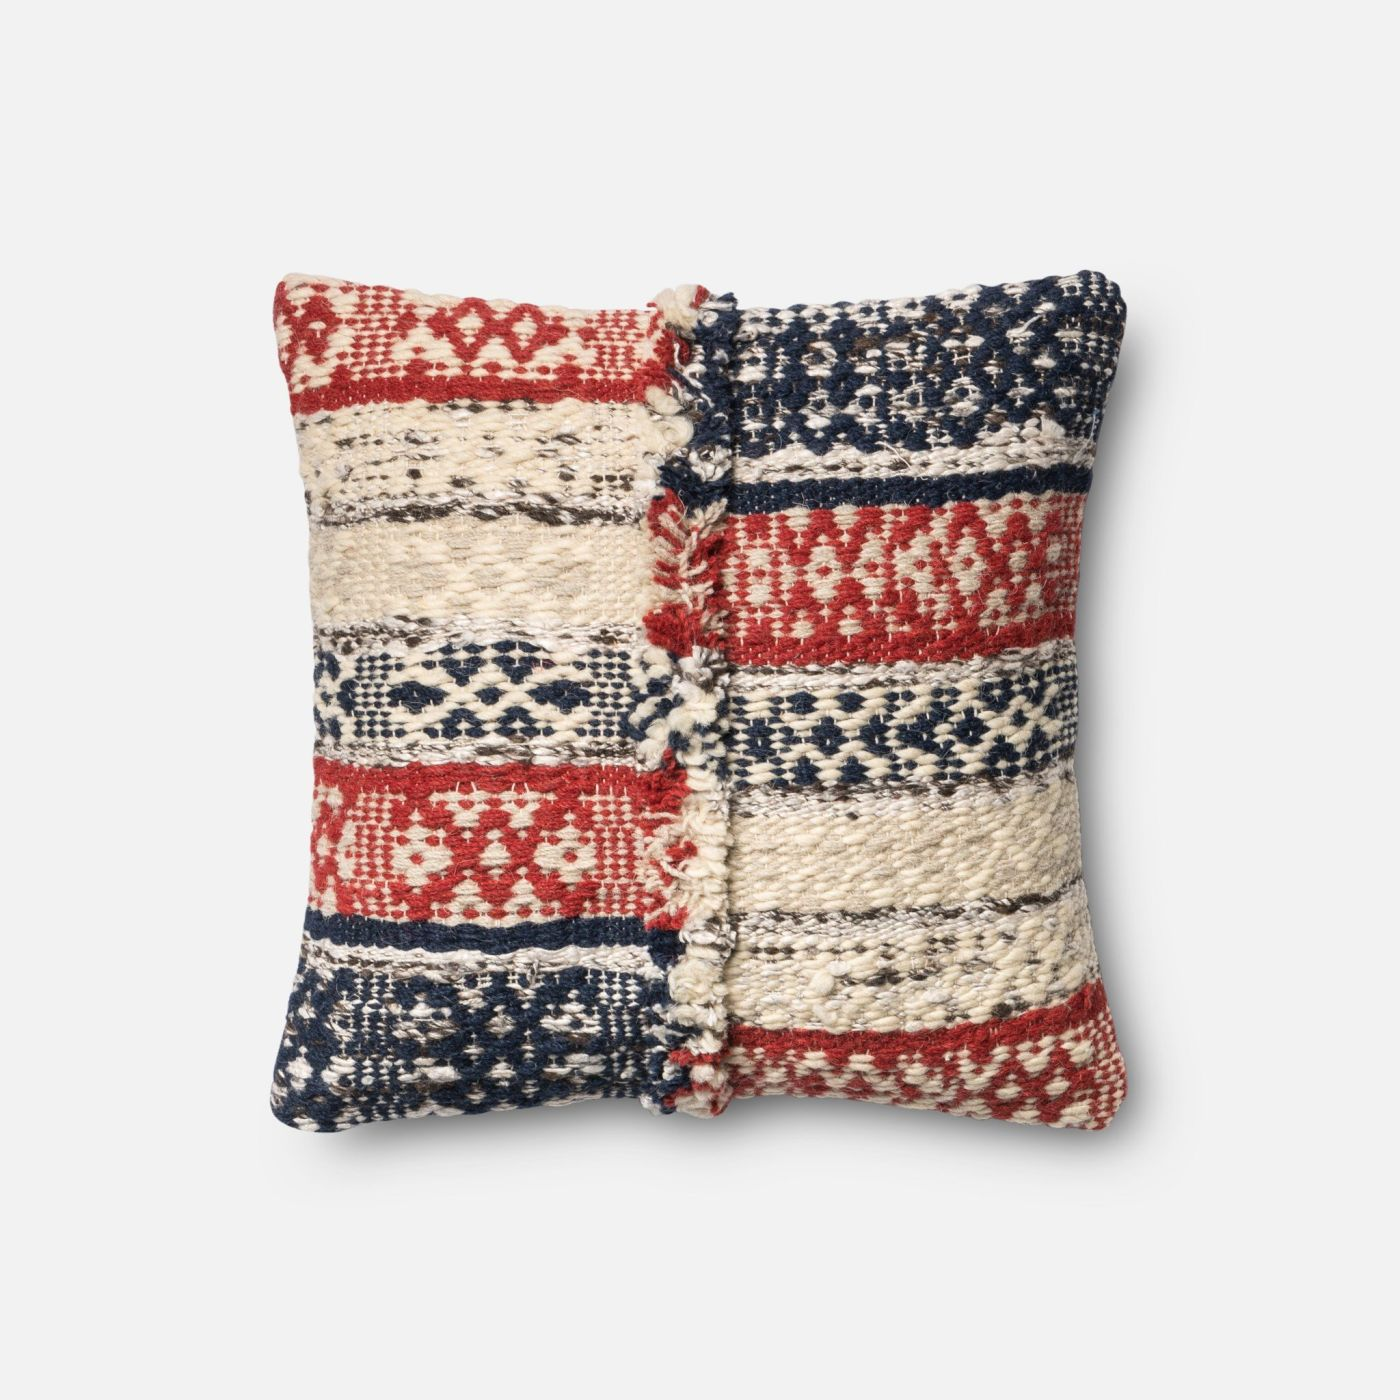 Blue Red Throw Pillow : Loloi Rugs Loloi Red / Blue Decorative Throw Pillow (P0377) DSETP0377REBBPIL1. Only $109.00 at ...